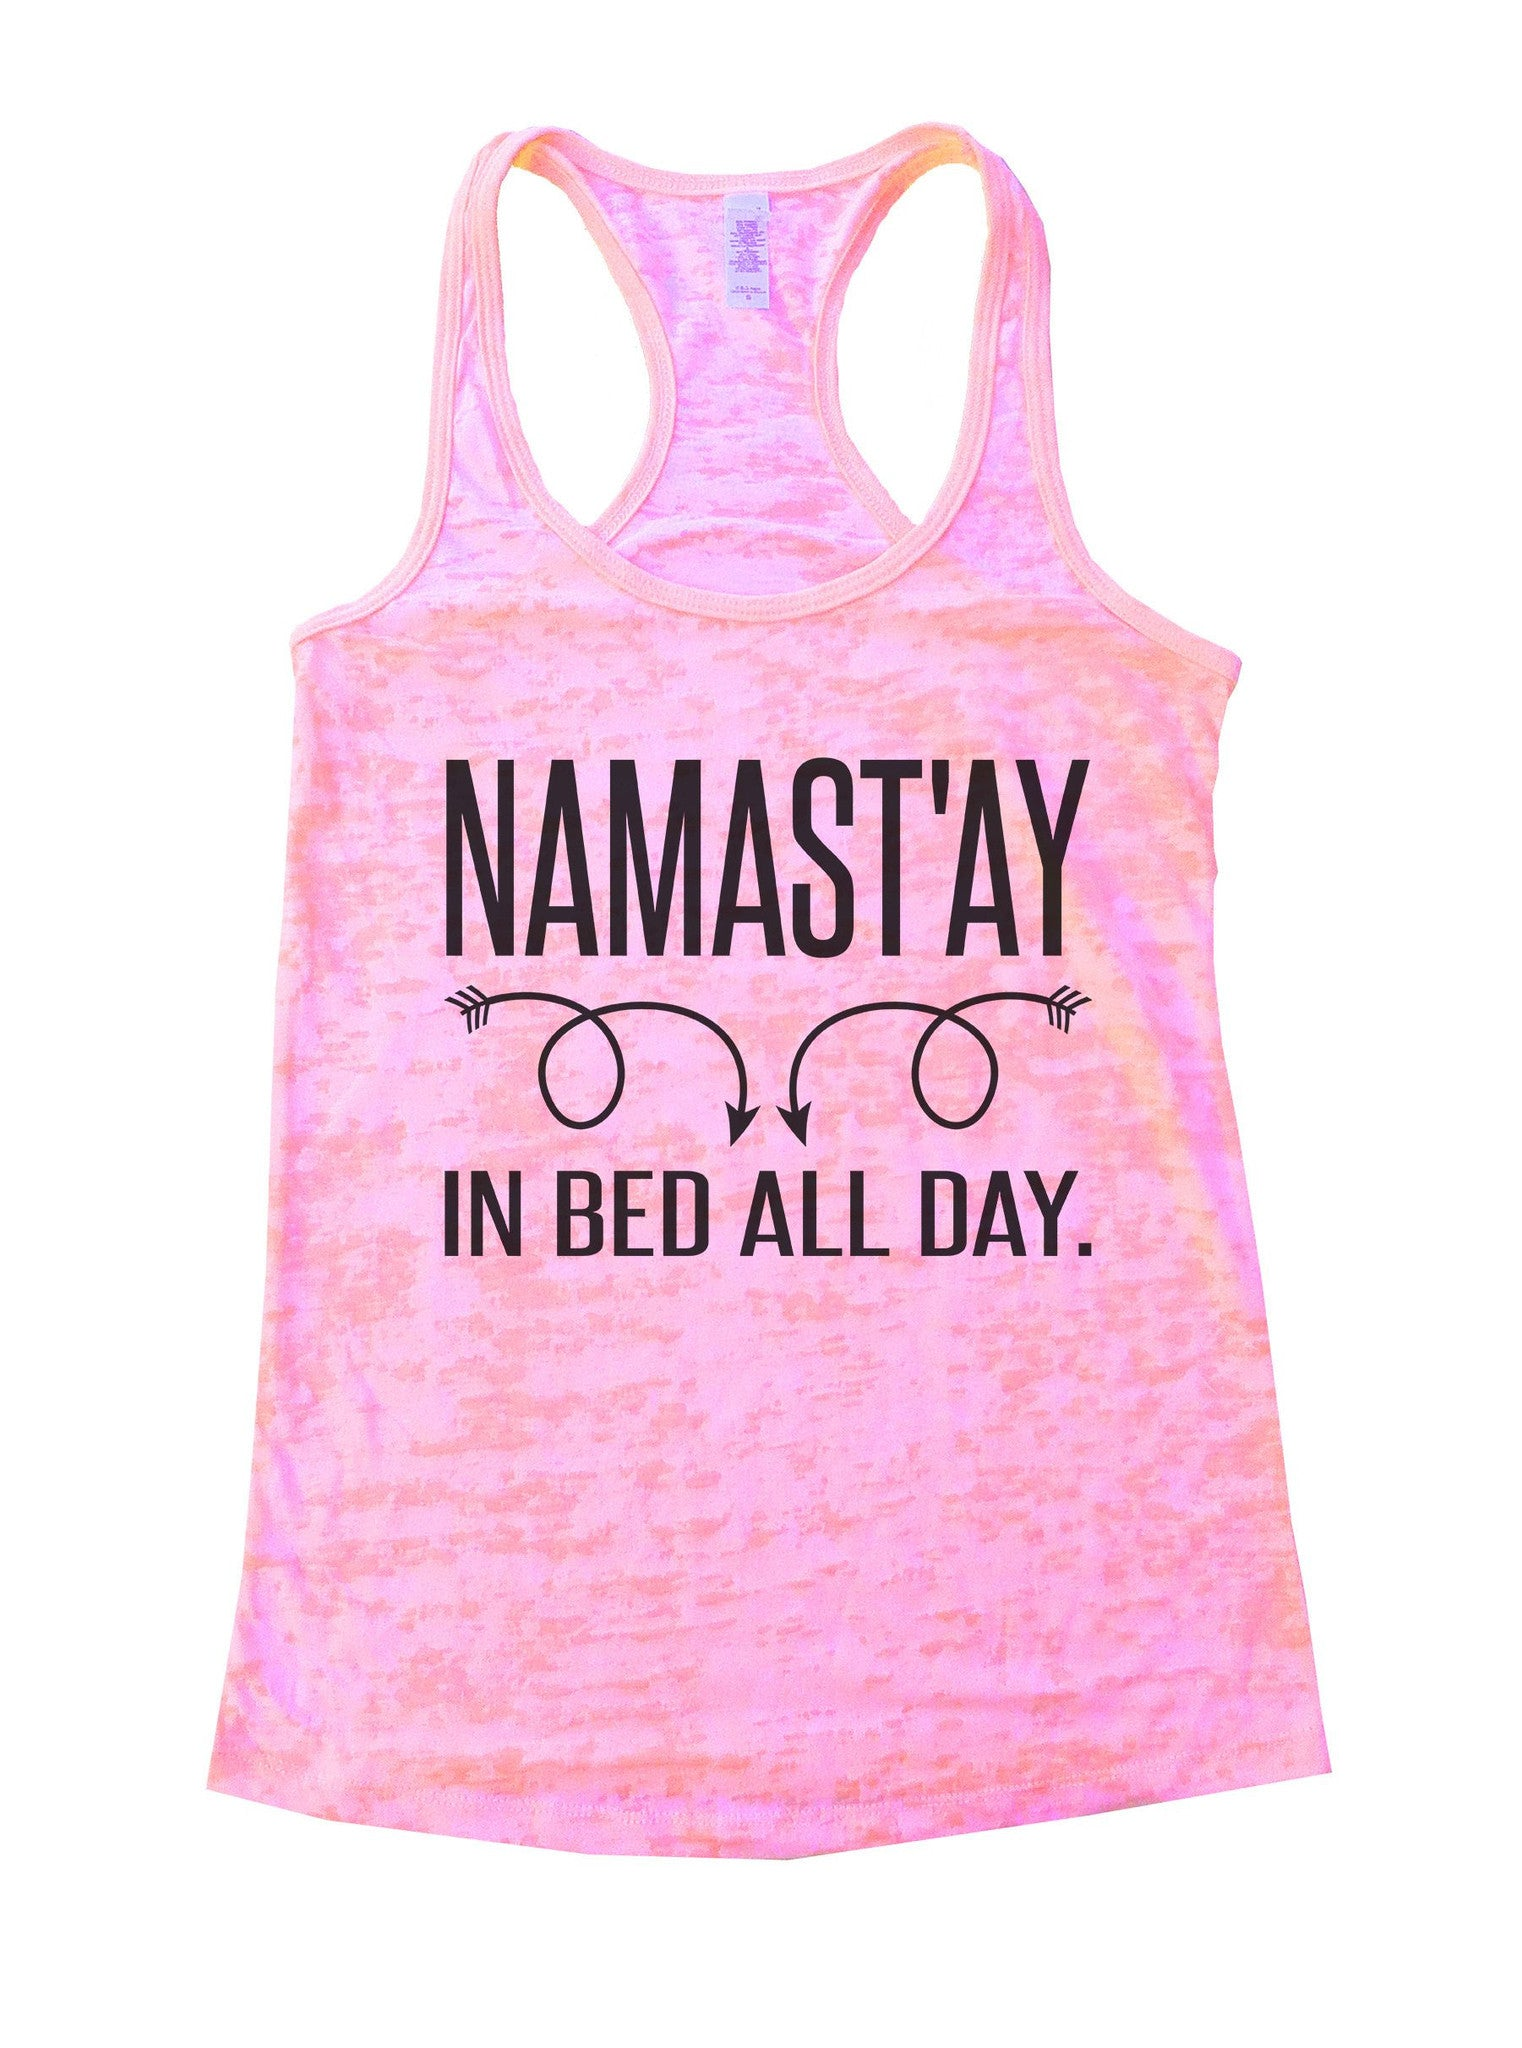 Namastay In Bed All Day Burnout Tank Top By Funny Treadz - 919 - Funny Shirts Tank Tops Burnouts and Triblends  - 1